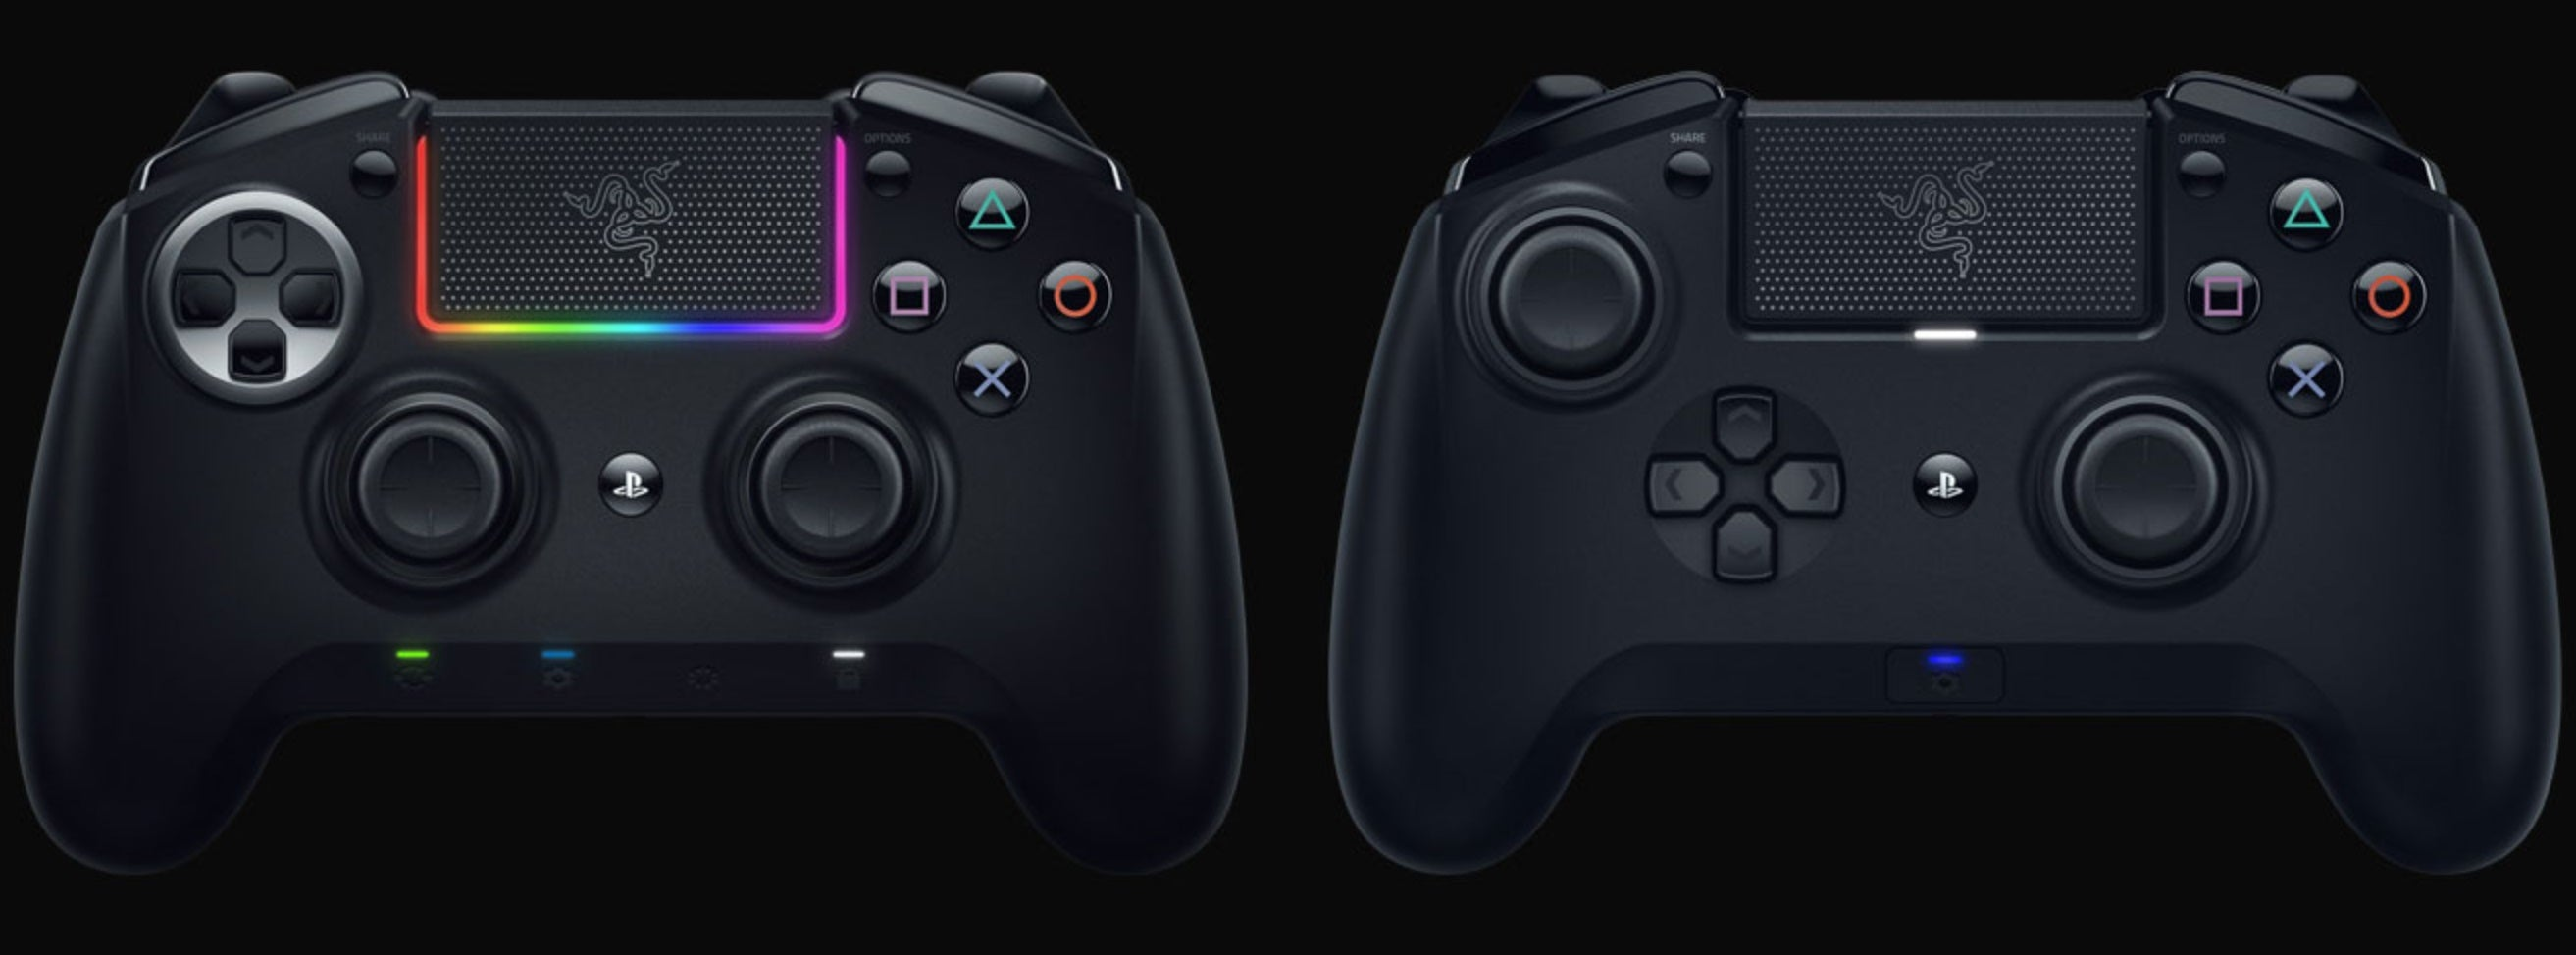 Remap button functions or enable Hair-Trigger mode on the Razer Raiju Tournament Edition, or take it up a notch with the Razer Raiju Ultimate and do everything from swapping thumbsticks, customizing Razer Chroma™, and accessing functions on the fly.